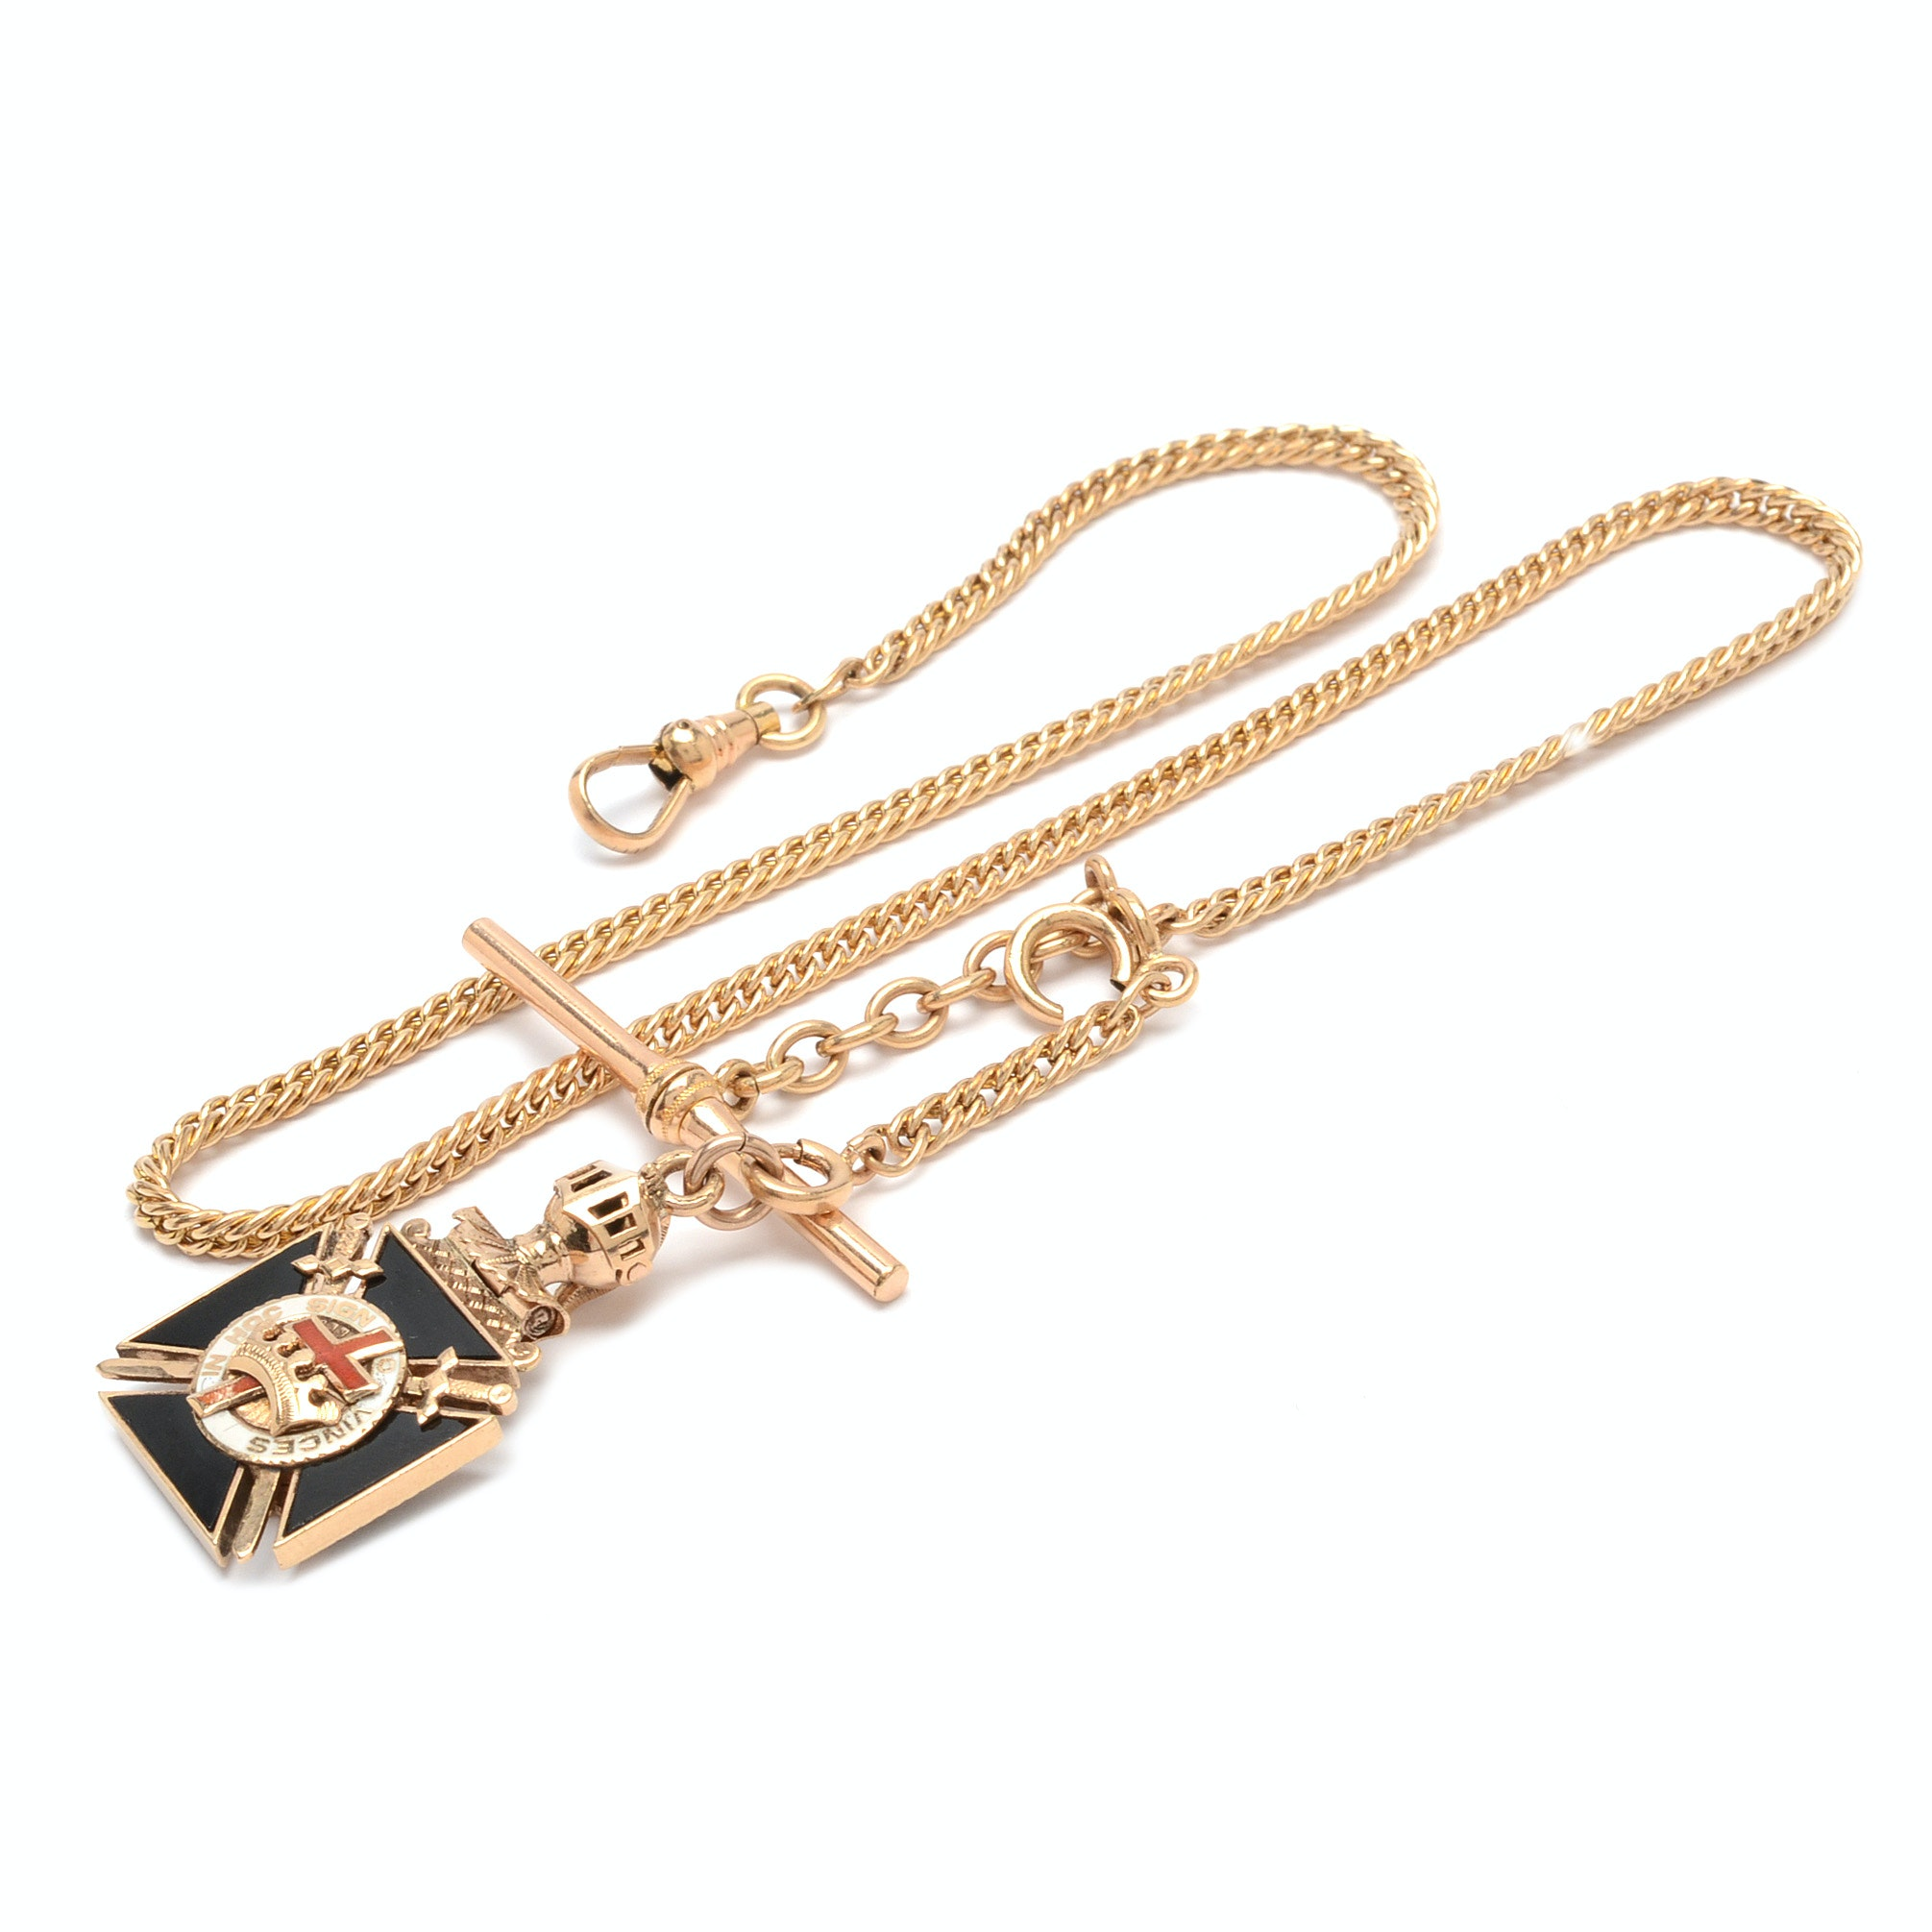 Decorative Gold Filled Watch Chain